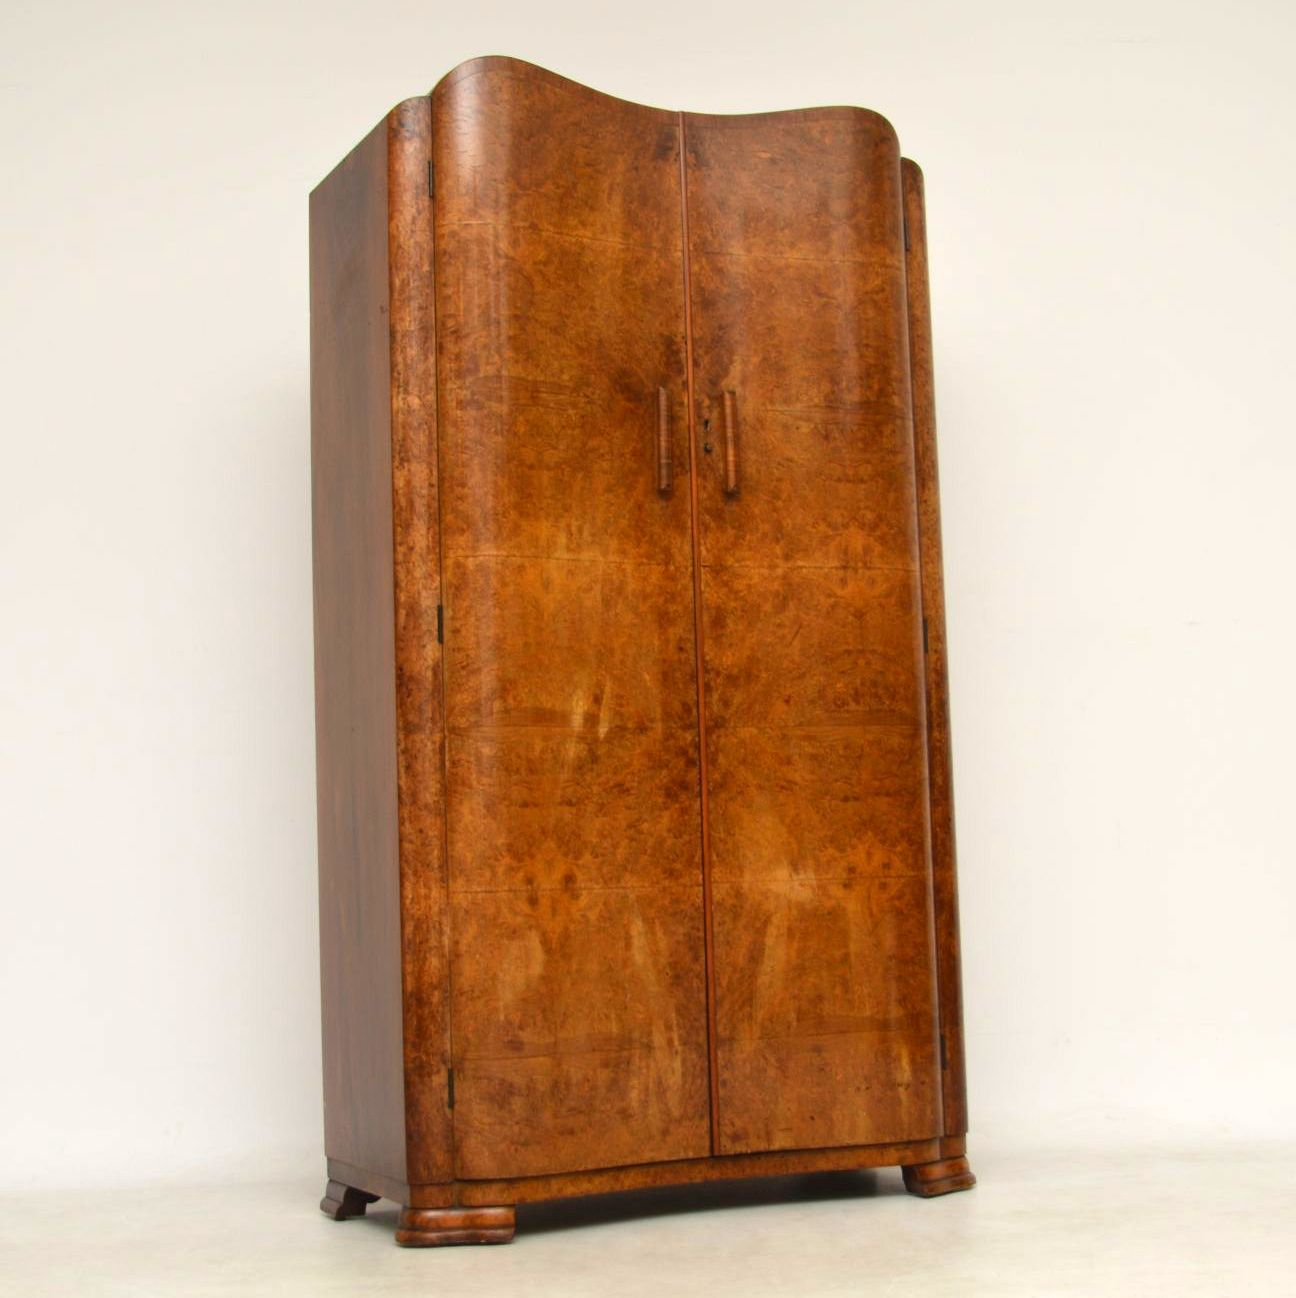 Art deco period furniture Neolithic 1920s Vintage Art Deco Walnut Wardrobe Tronmedia 1920s Vintage Art Deco Walnut Wardrobe Retrospective Interiors